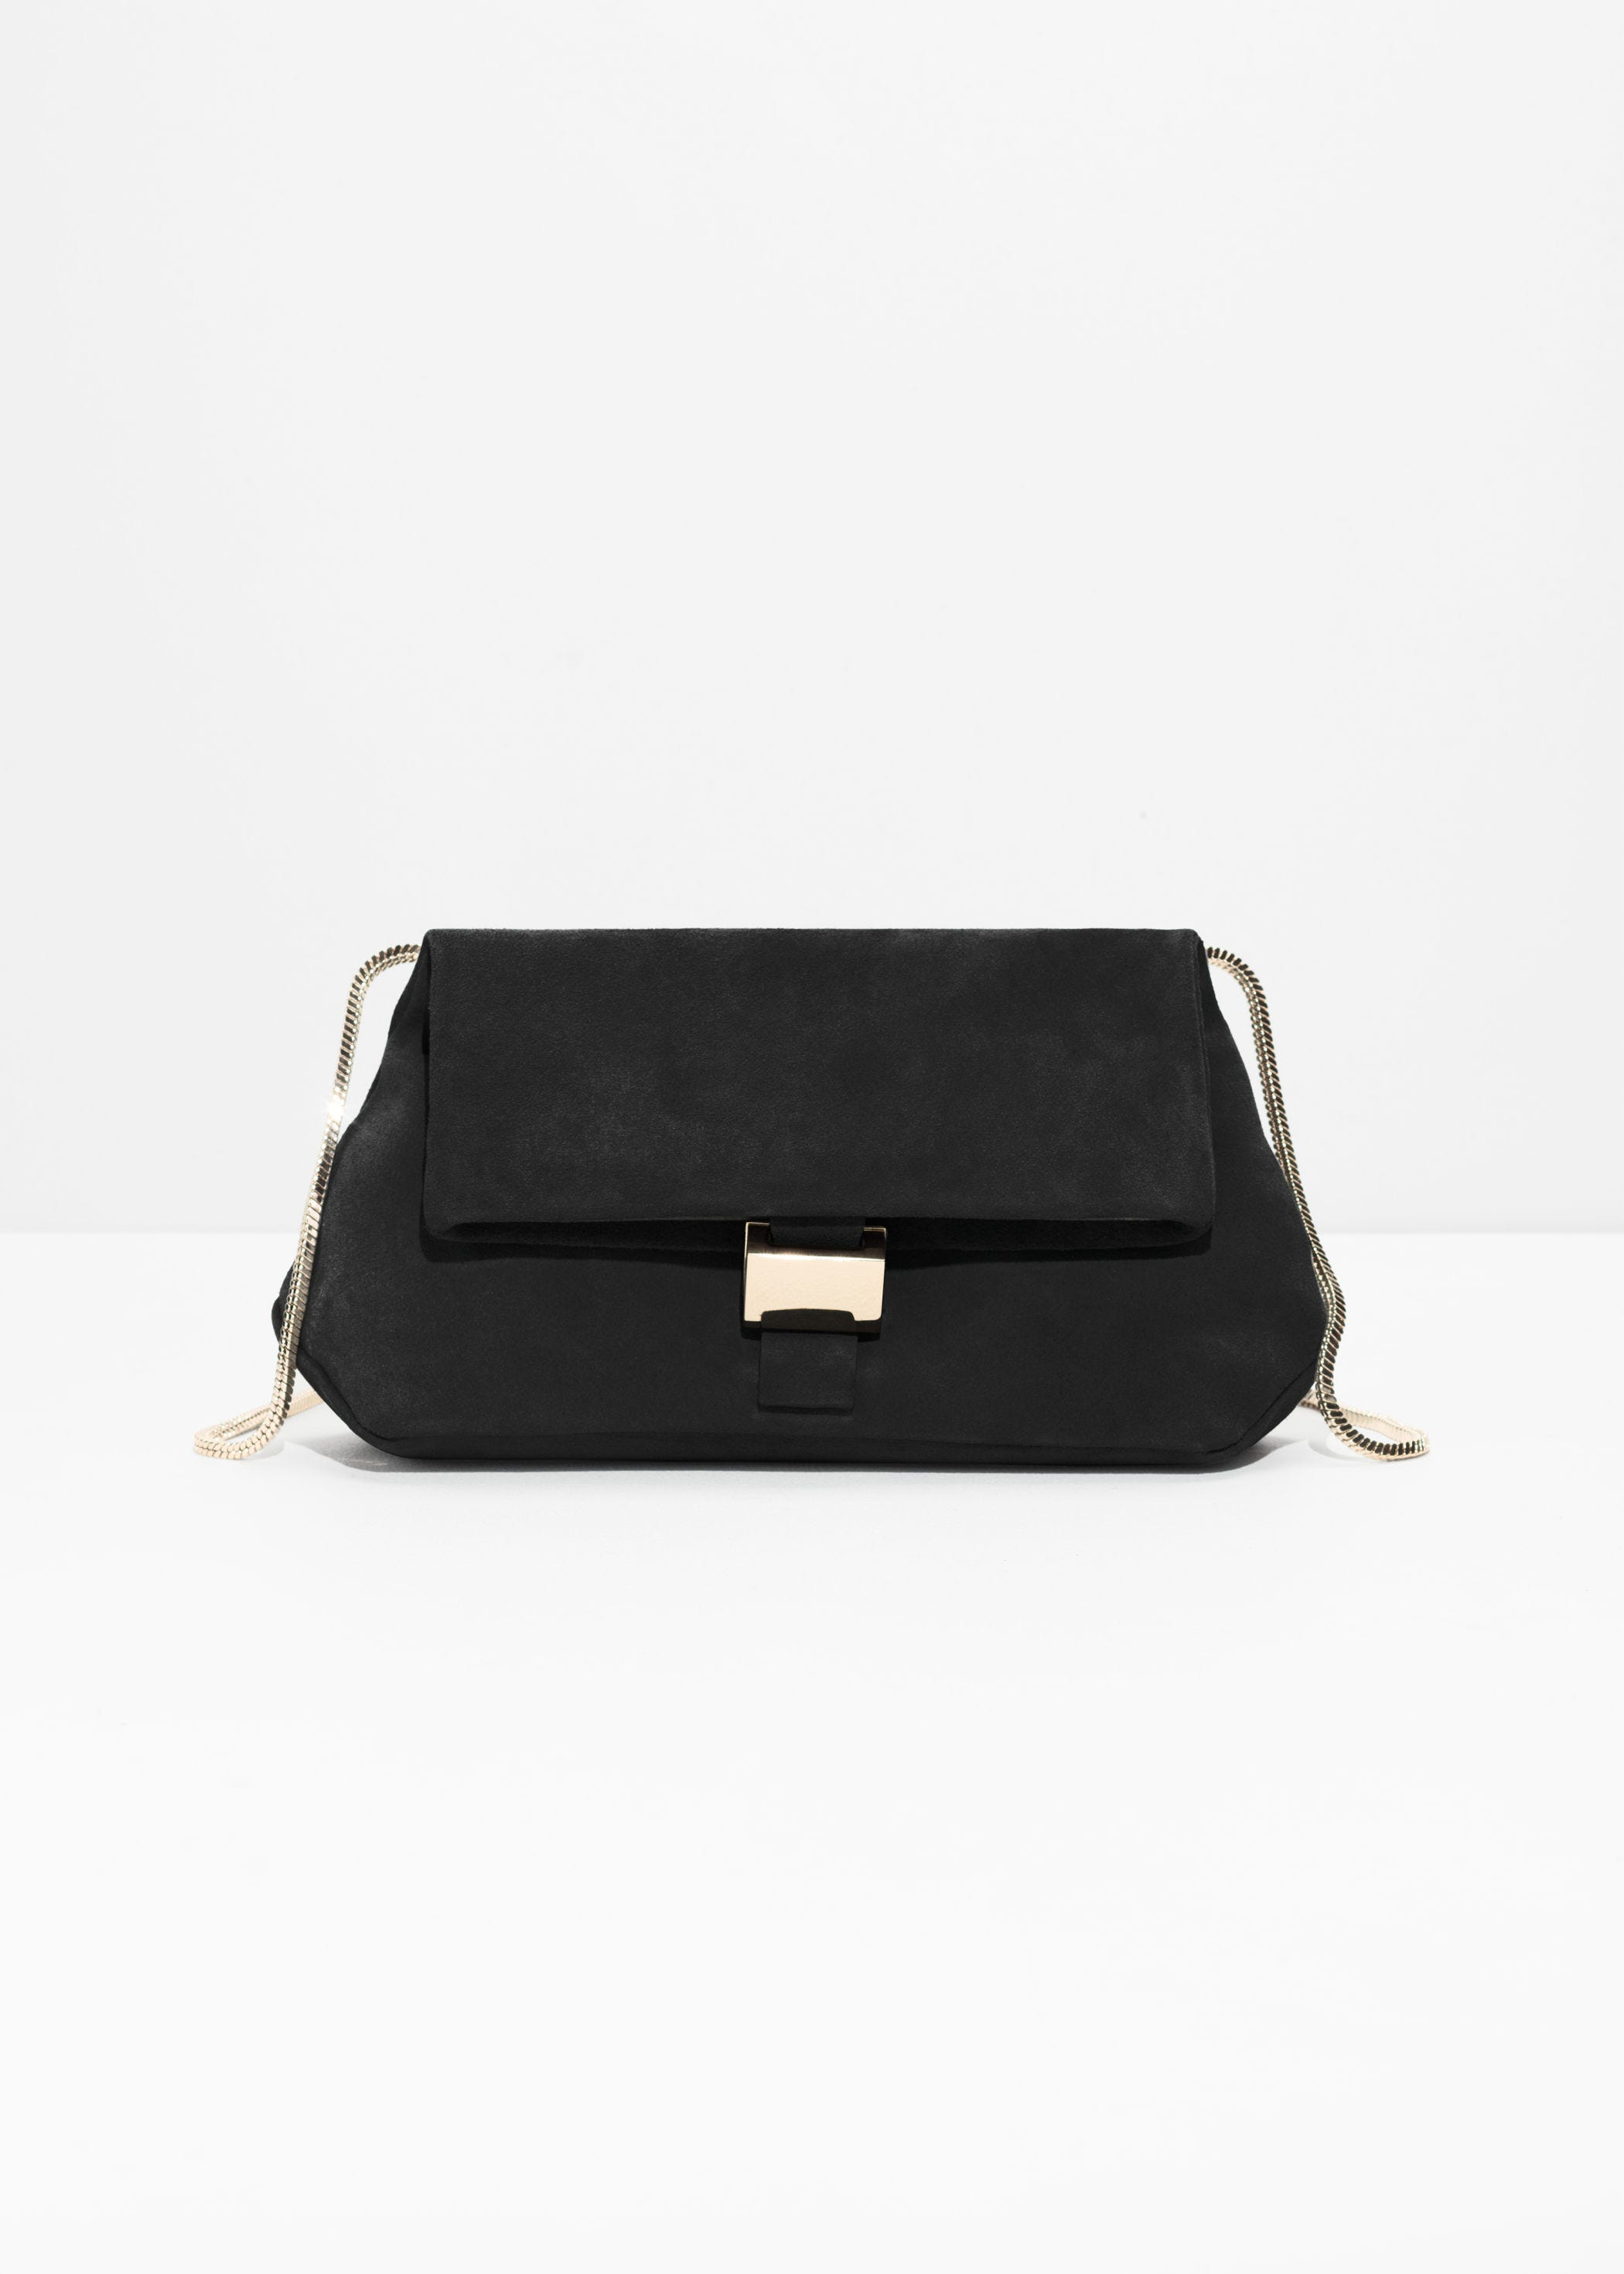 Other Stories + Small Leather Fold-Over Bag c5b3cbc214724